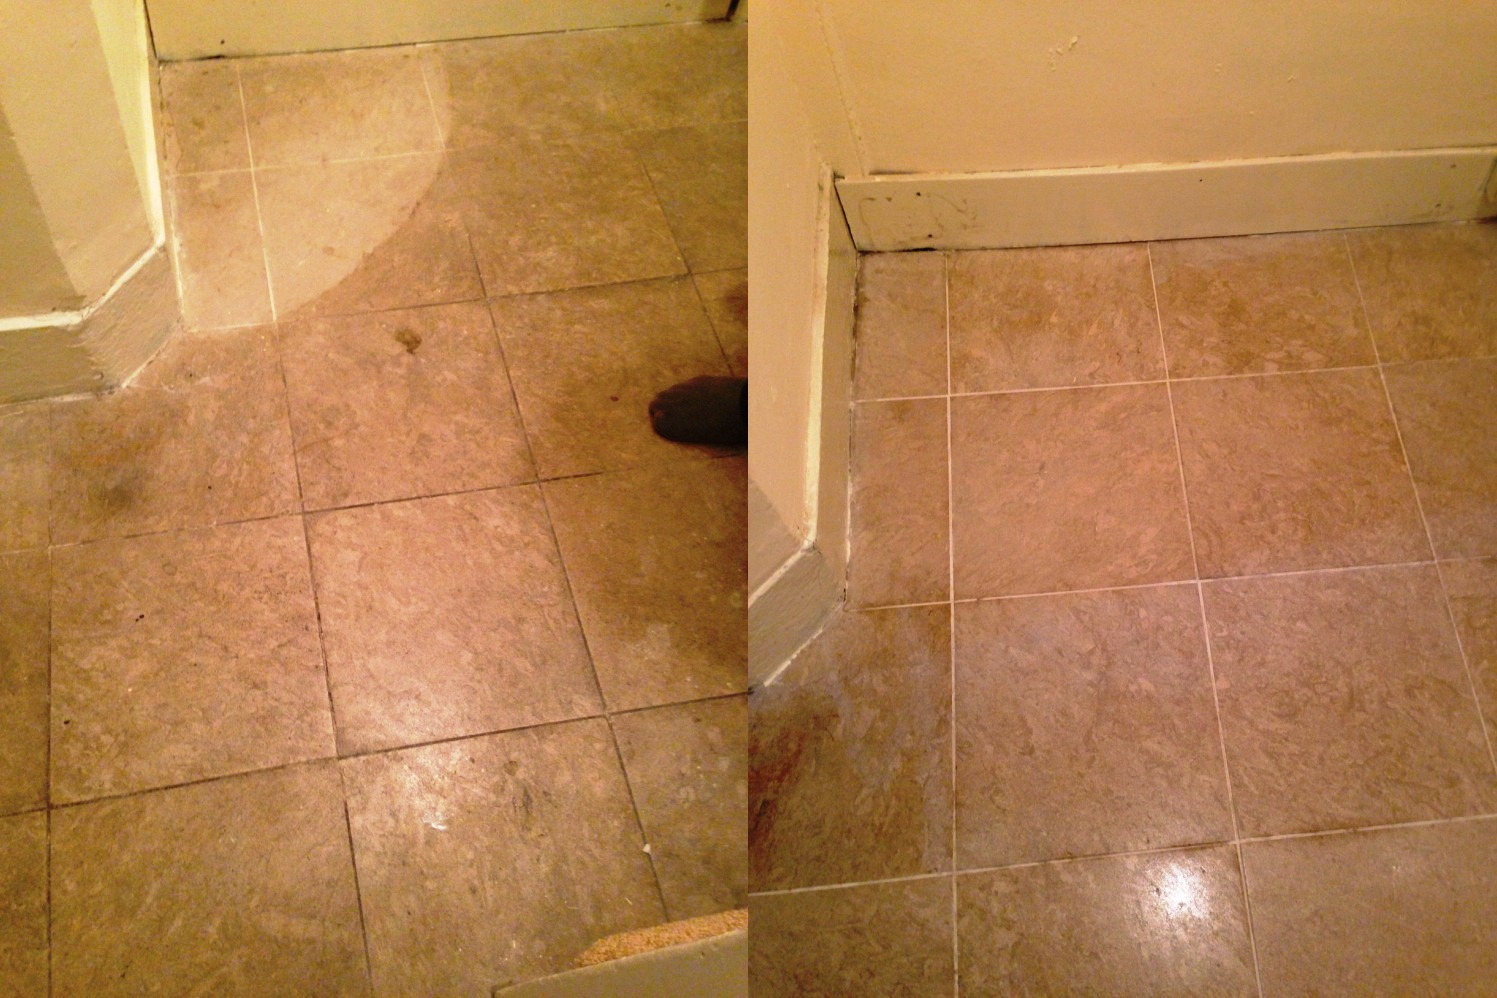 Limestone Tiled Floor Kensington Before and After Cleaning